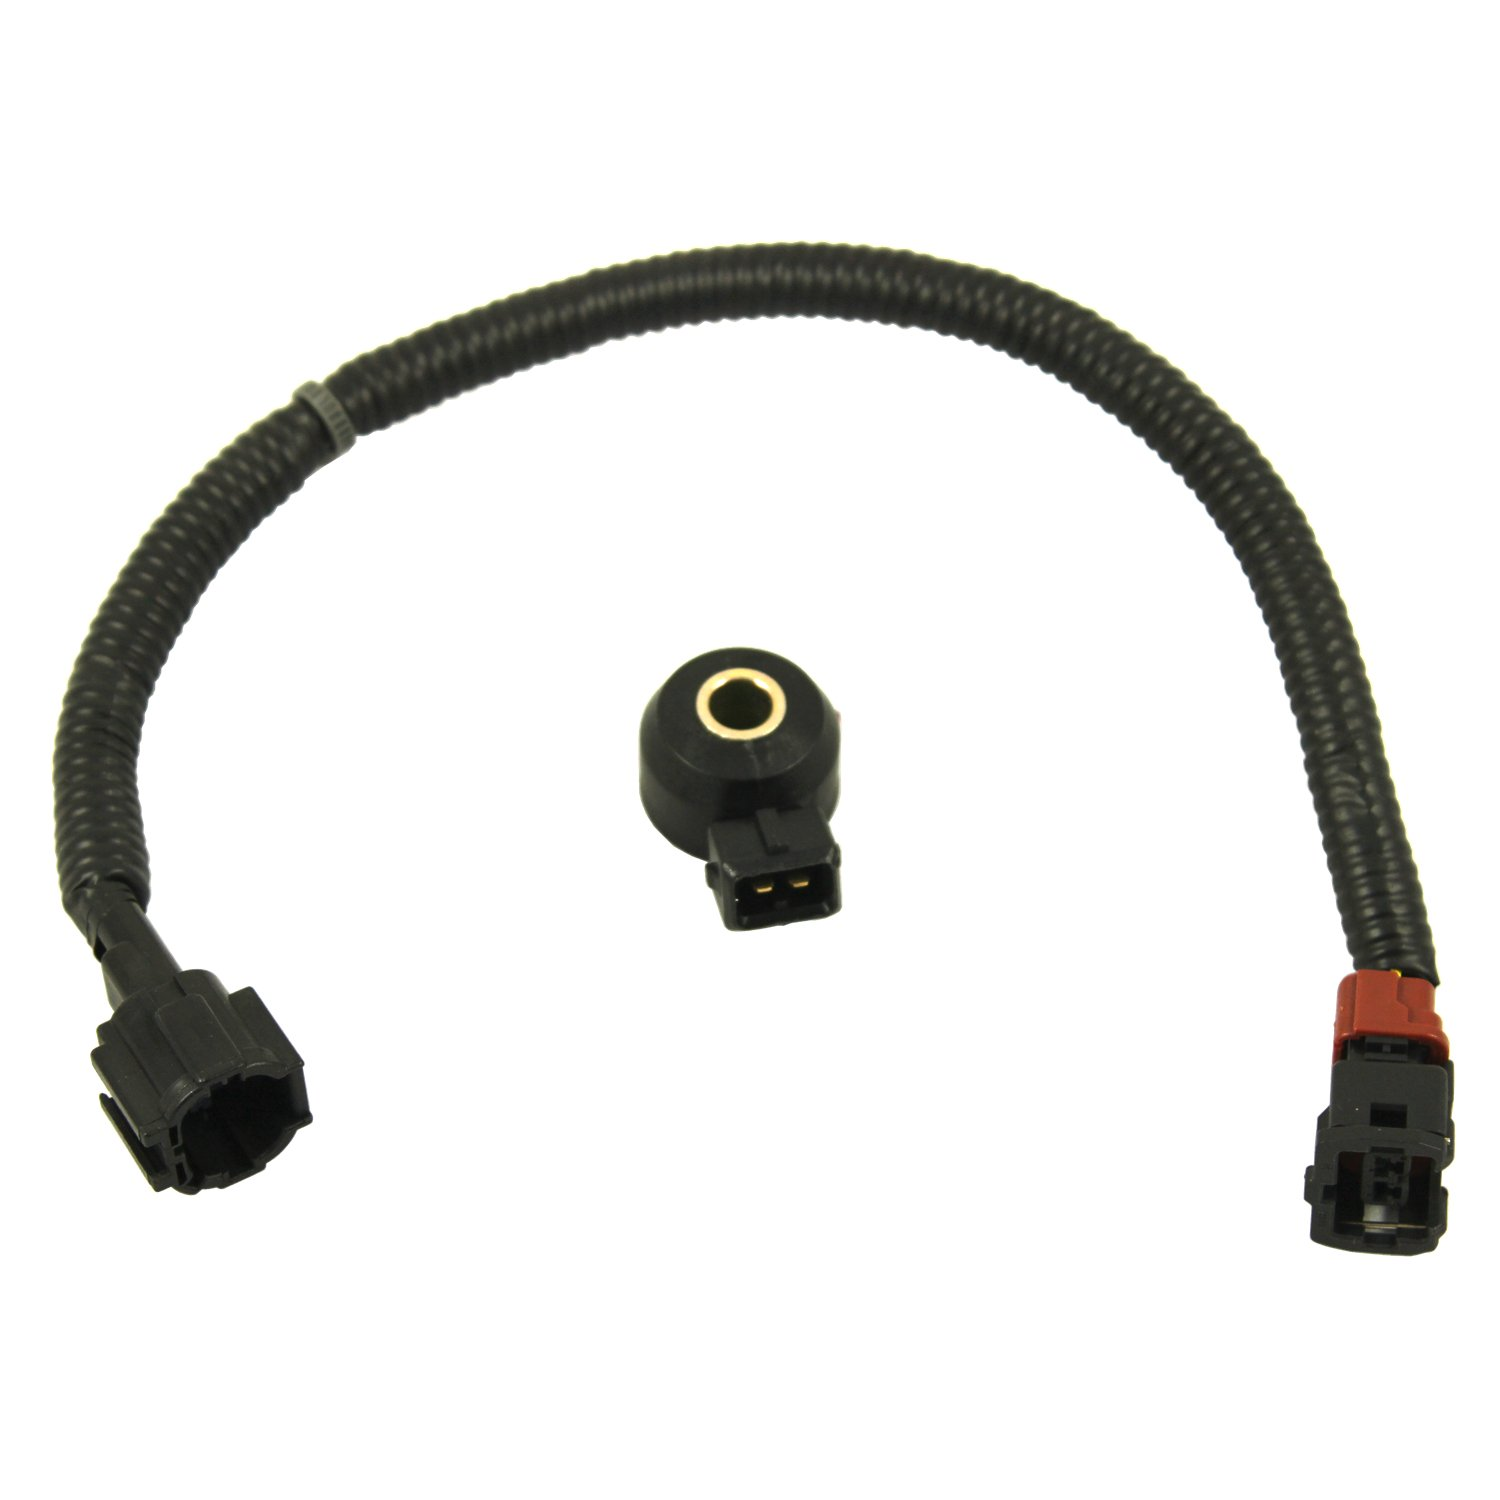 22060-30P00//2206030P00 is compatible with 1993 1994 1995 1996 1997 1998 NISSAN QUEST 3.0L Interchange numbers New Engine Knock Sensor